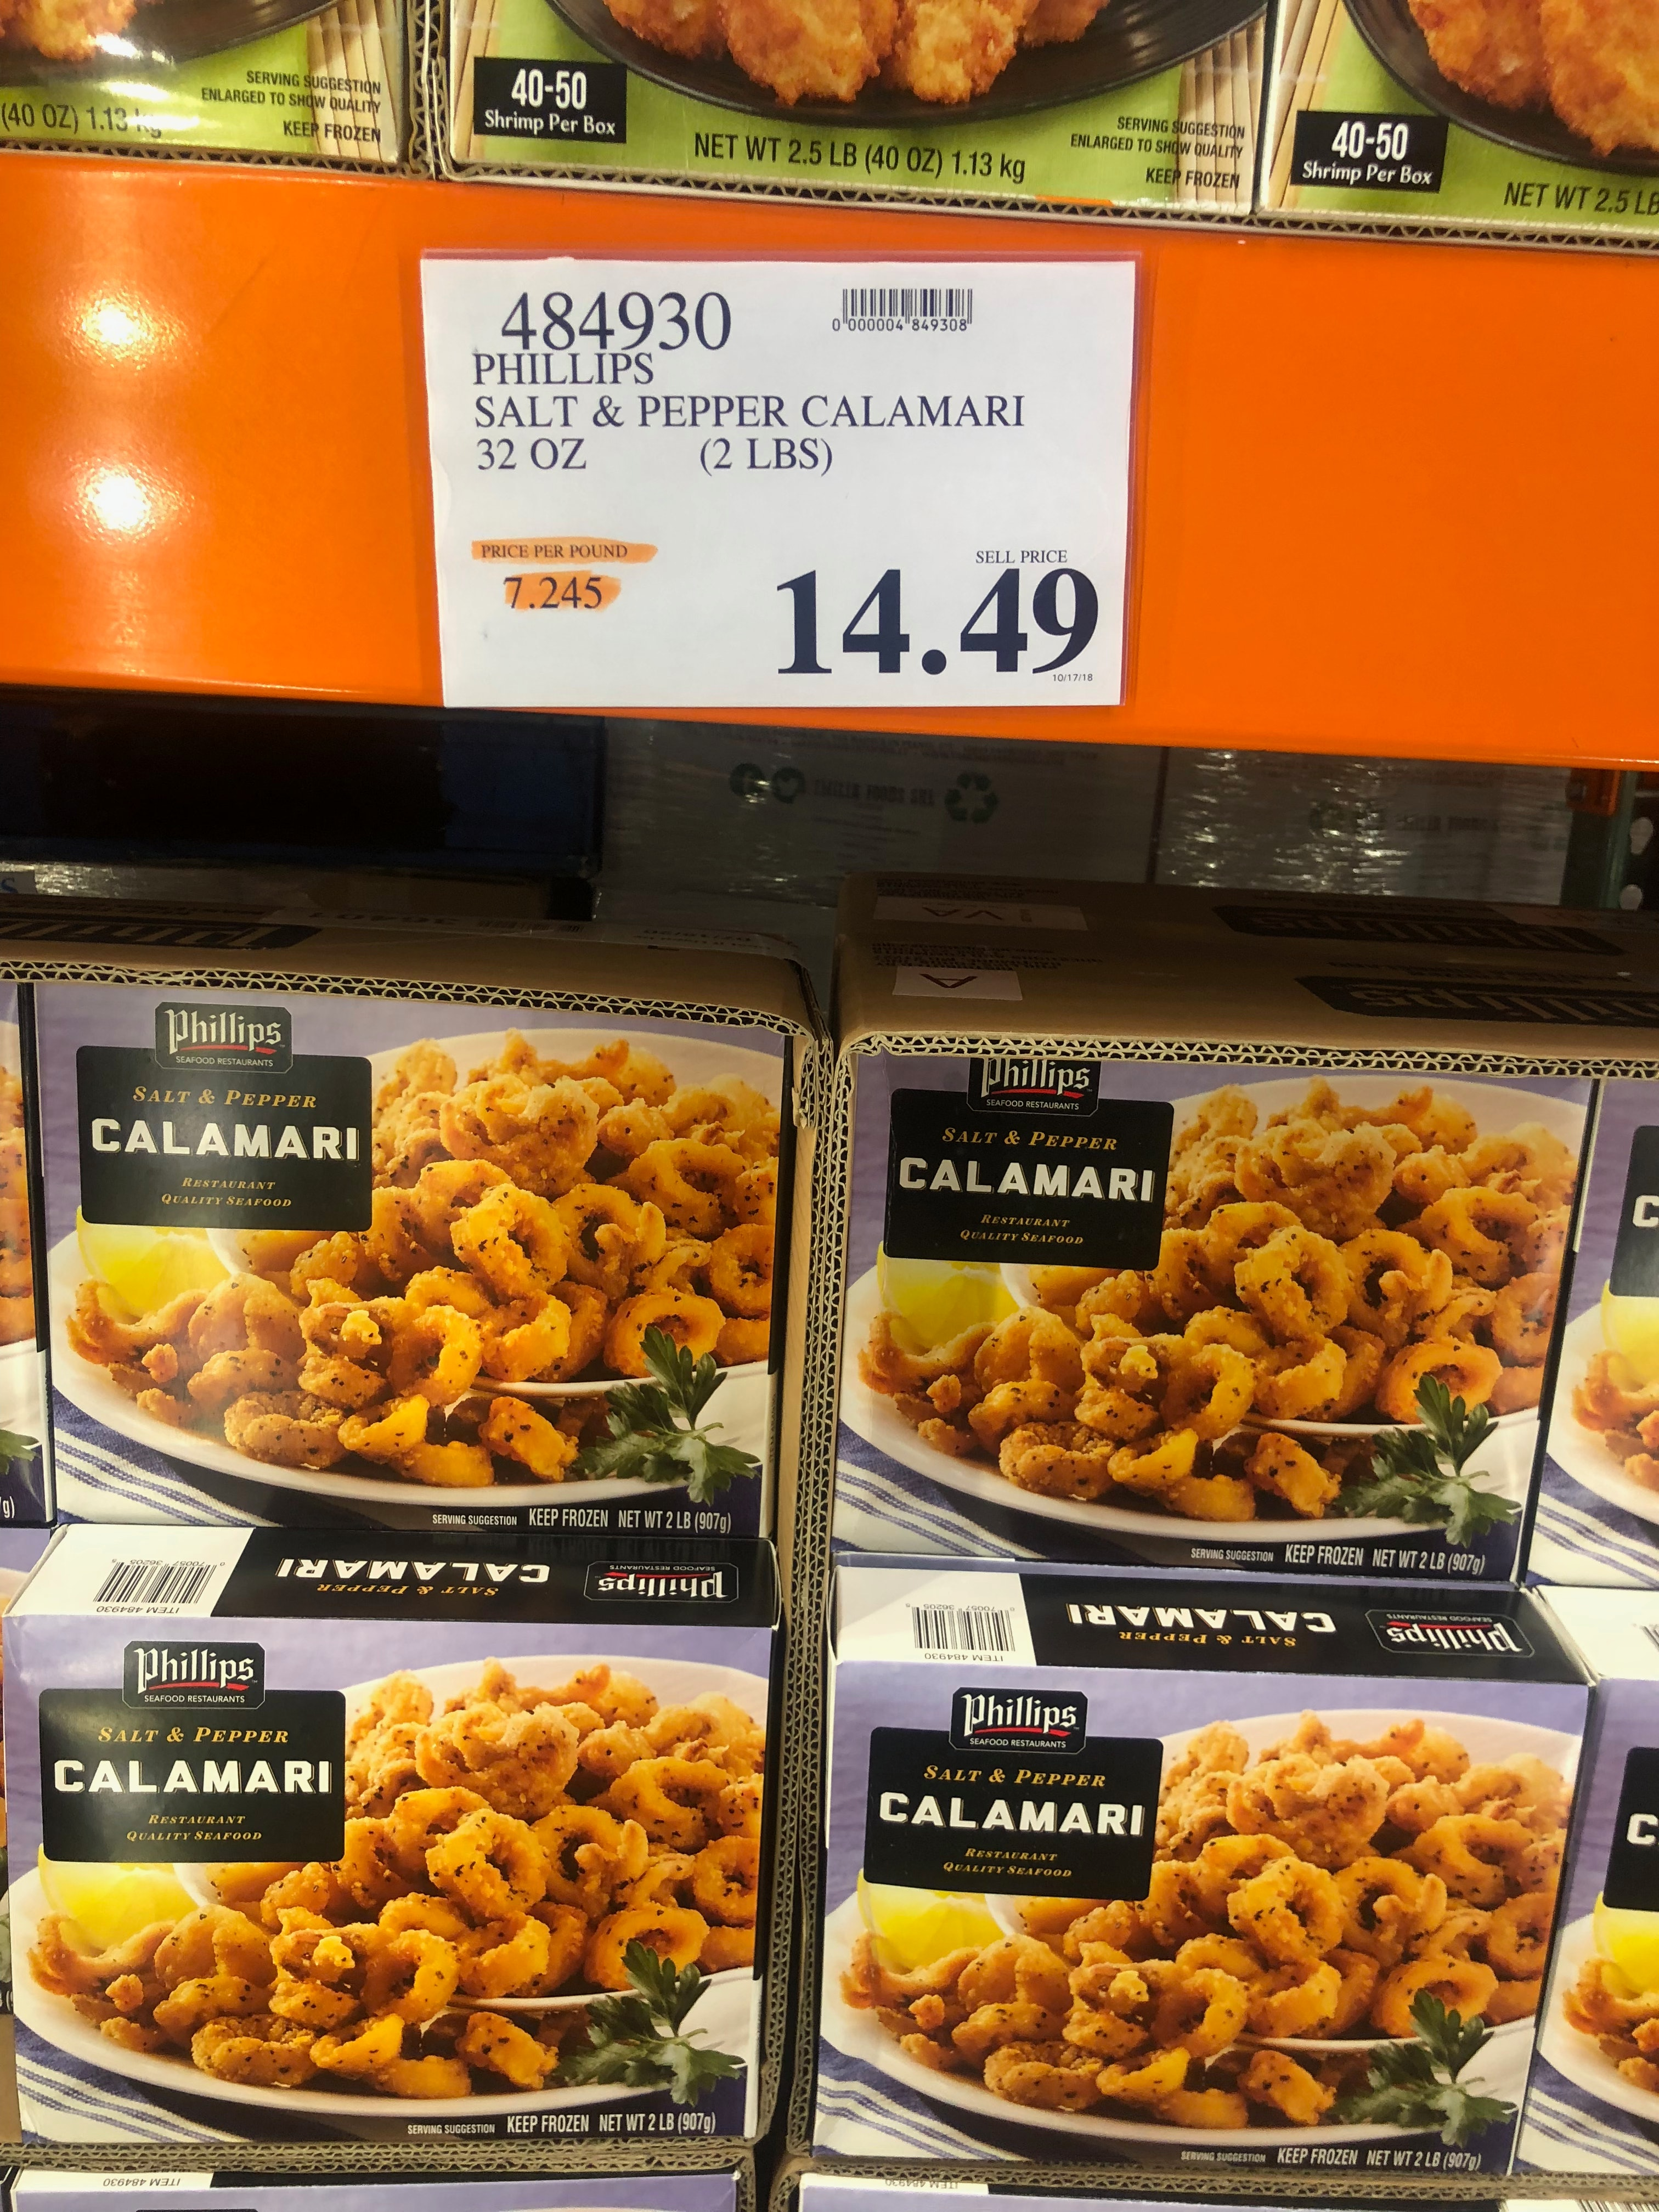 15 Pre-Made Holiday Appetizers From Costco That Are So Good, No One